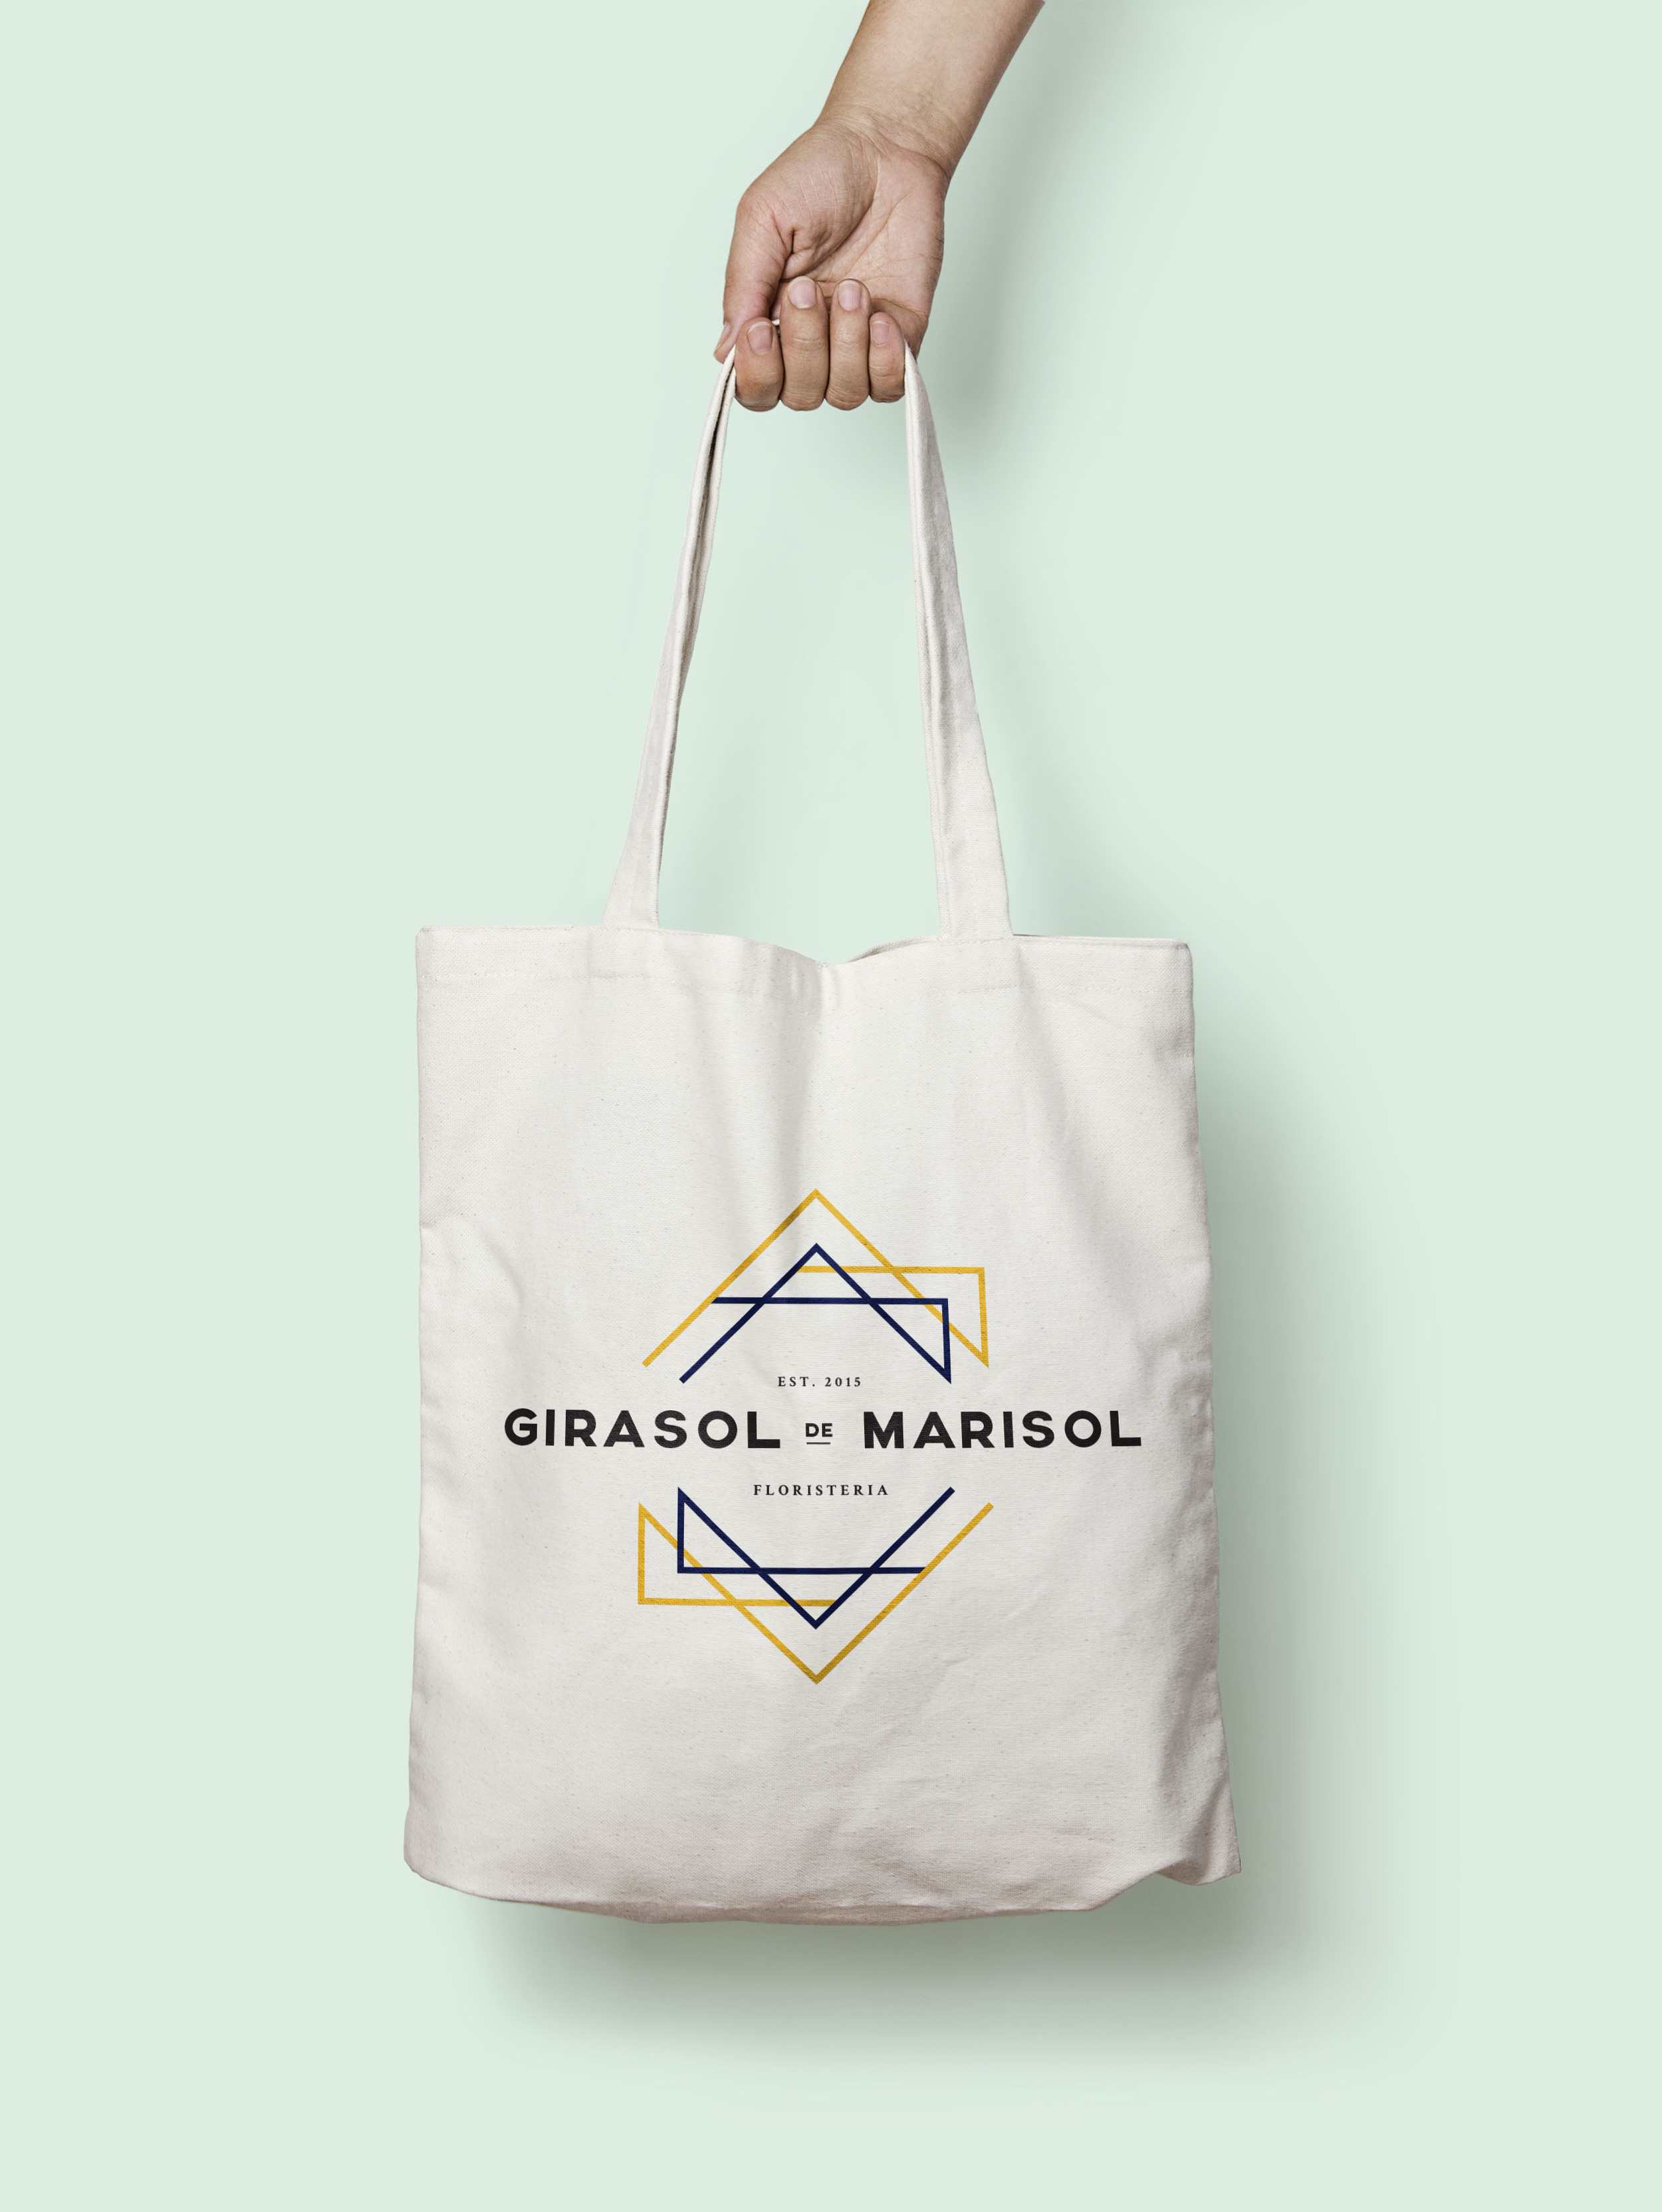 girasoldemarisol_branding_totes_bag_by_inbetween_studio